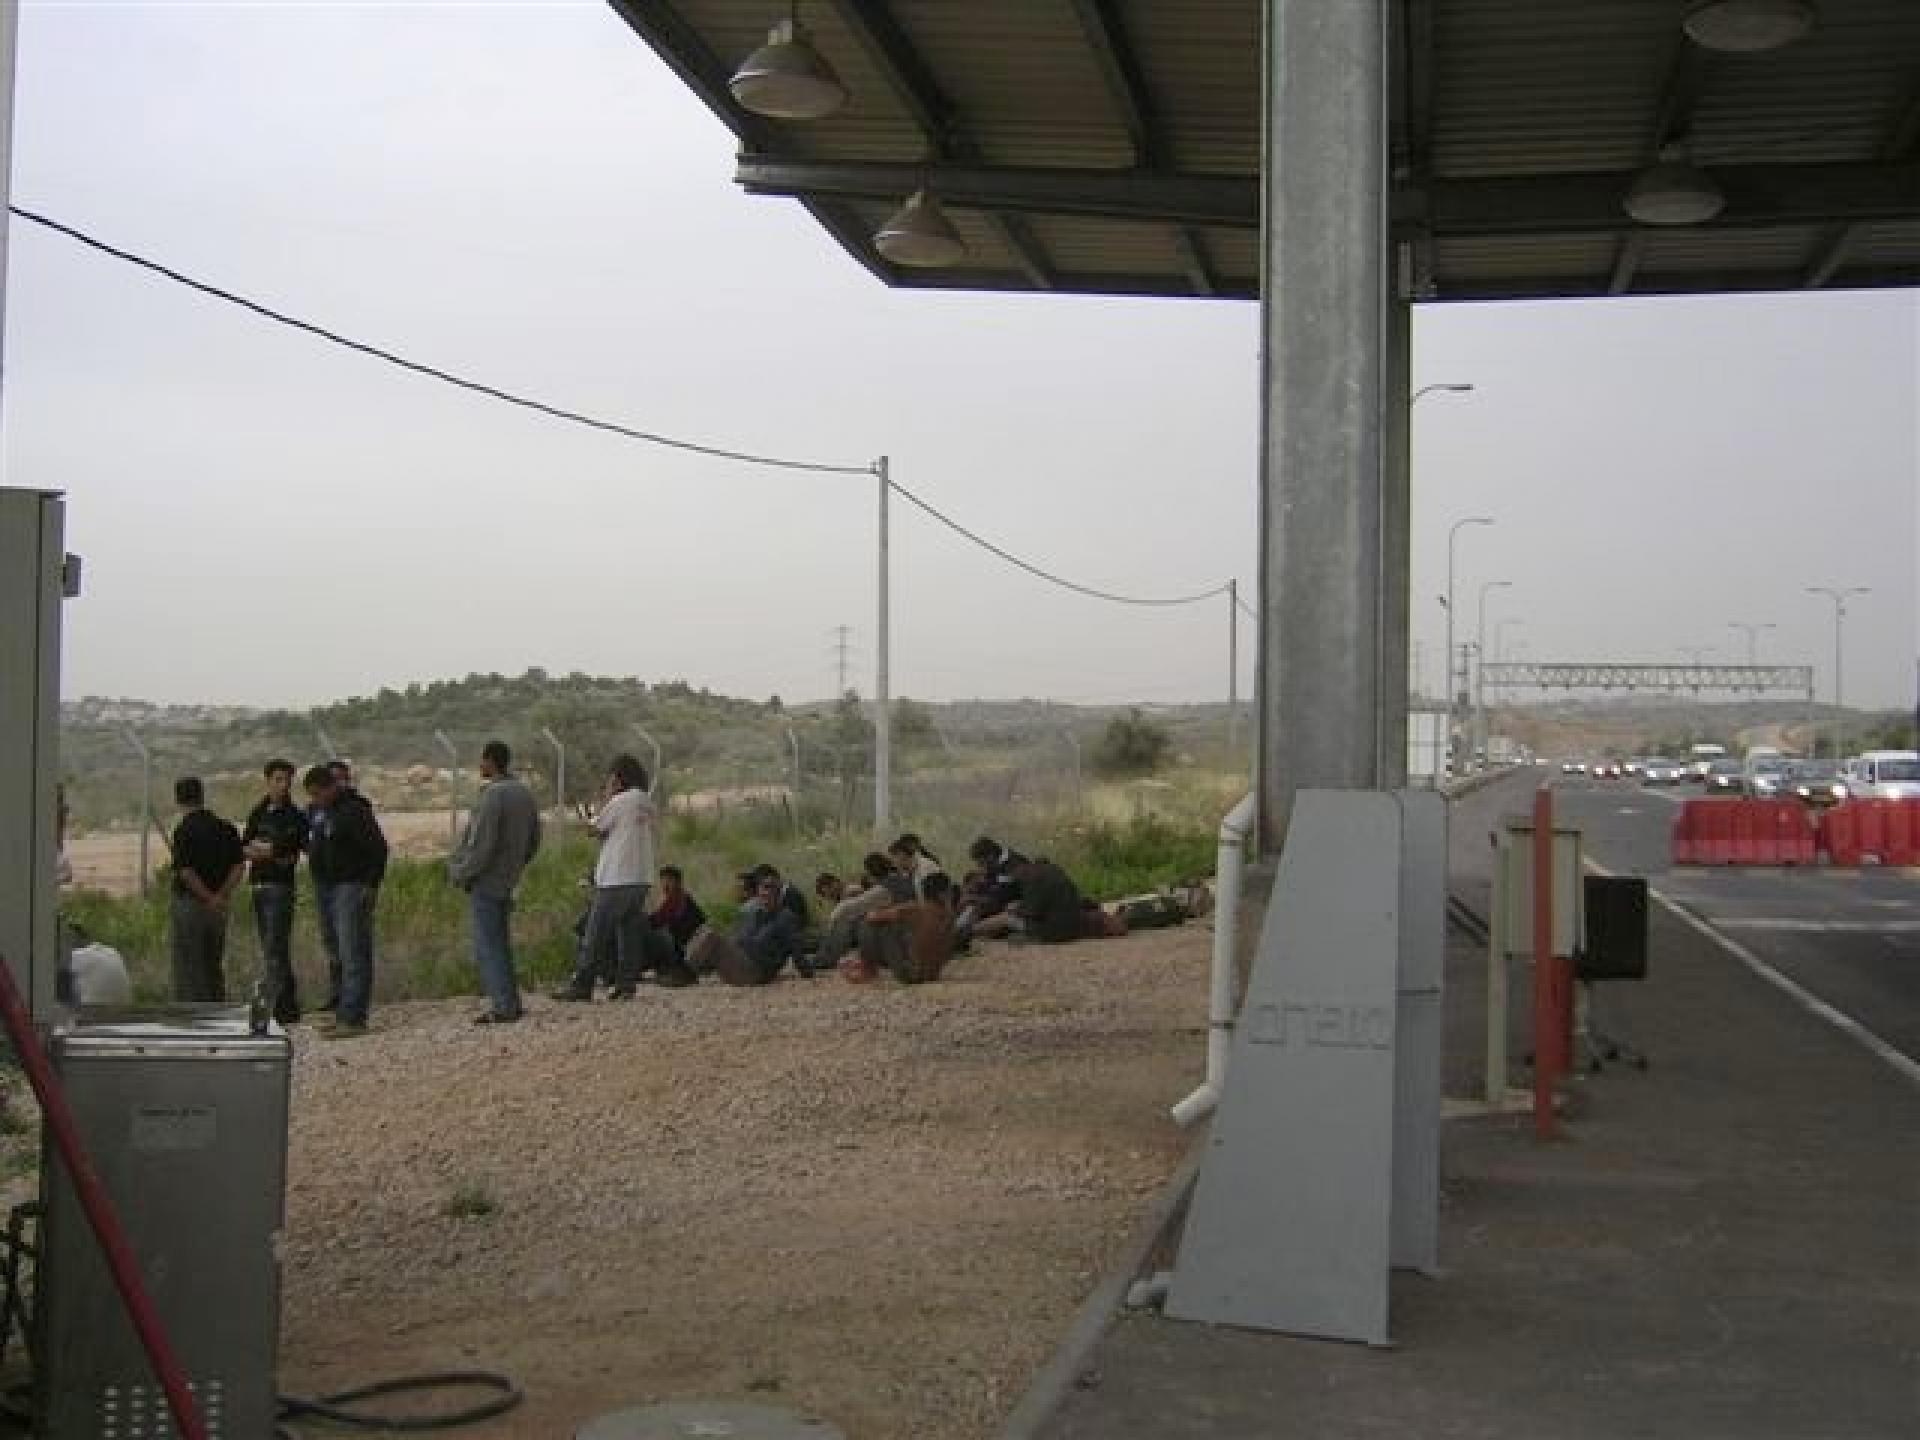 Shomron crossing checkpoint 06.04.08